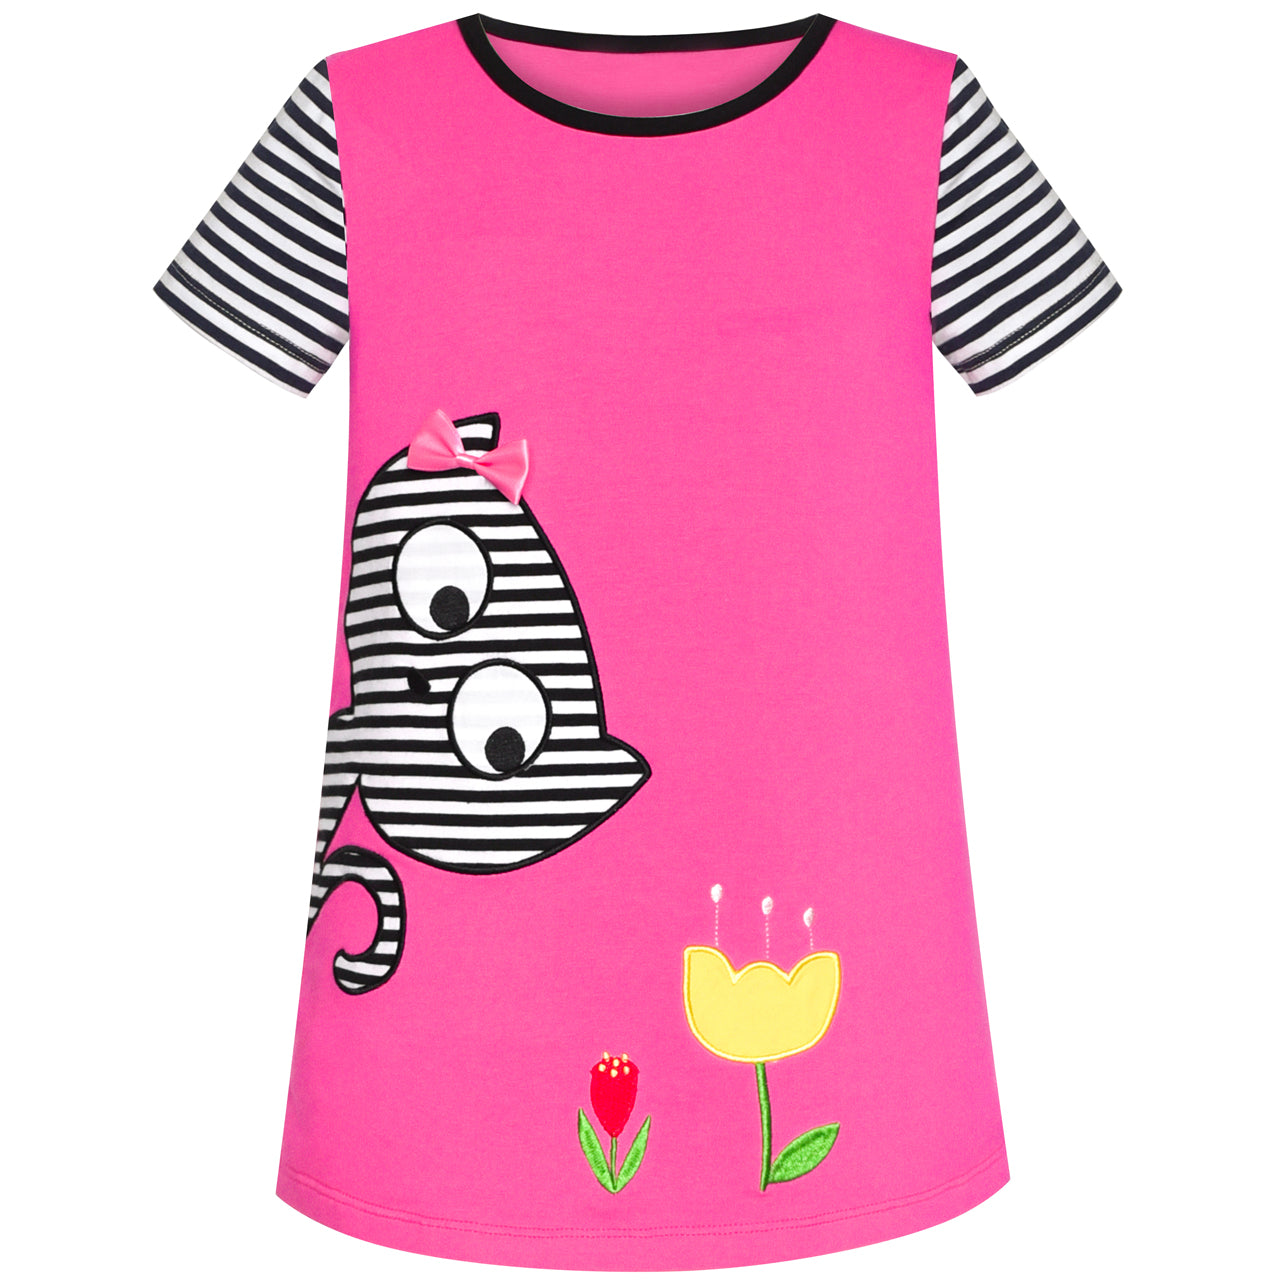 Girls Dress T-Shirt Cotton Bird Embroidered Short Sleeve Age 2-6 Years